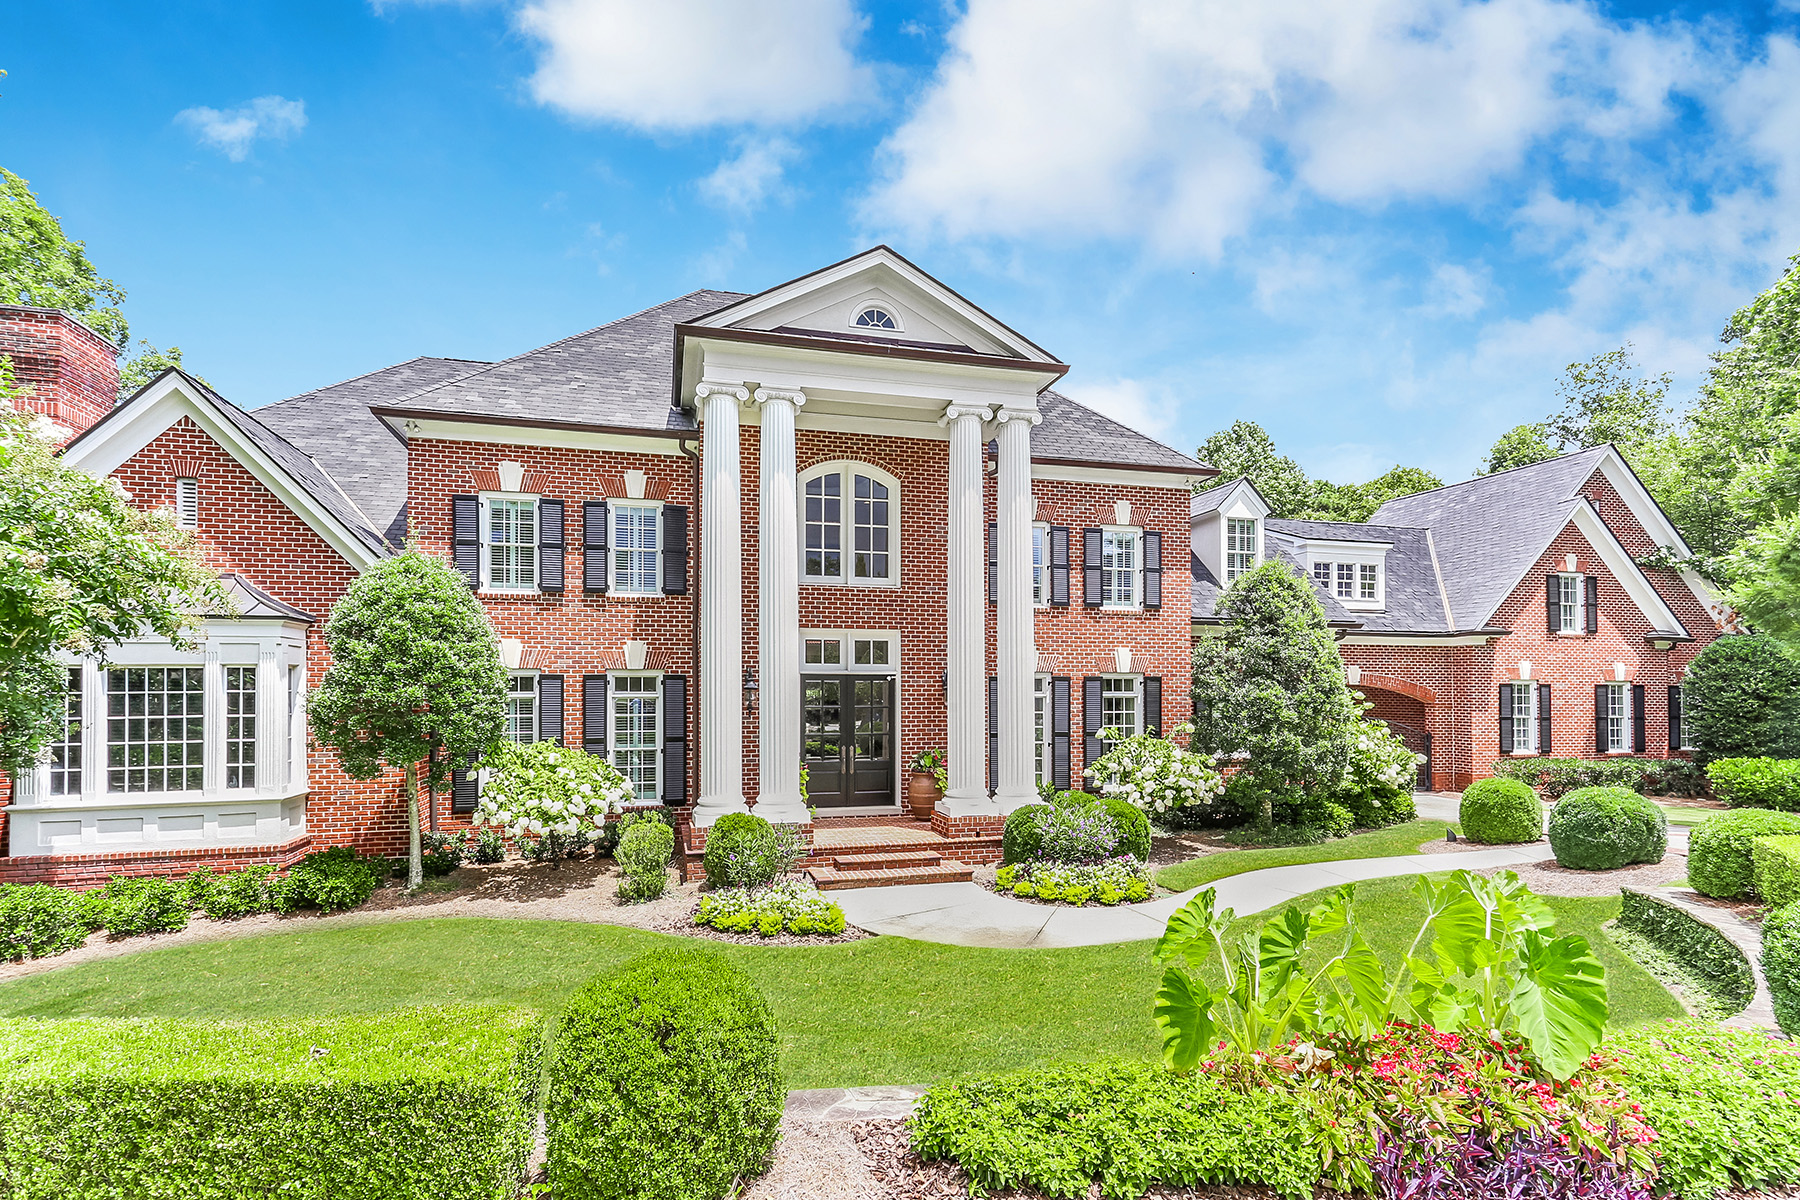 Single Family Homes for Sale at Exceptional Private 3.6 Acre Gated Estate Backing To Chattahoochee National Park 374 Citadella Court Johns Creek, Georgia 30022 United States